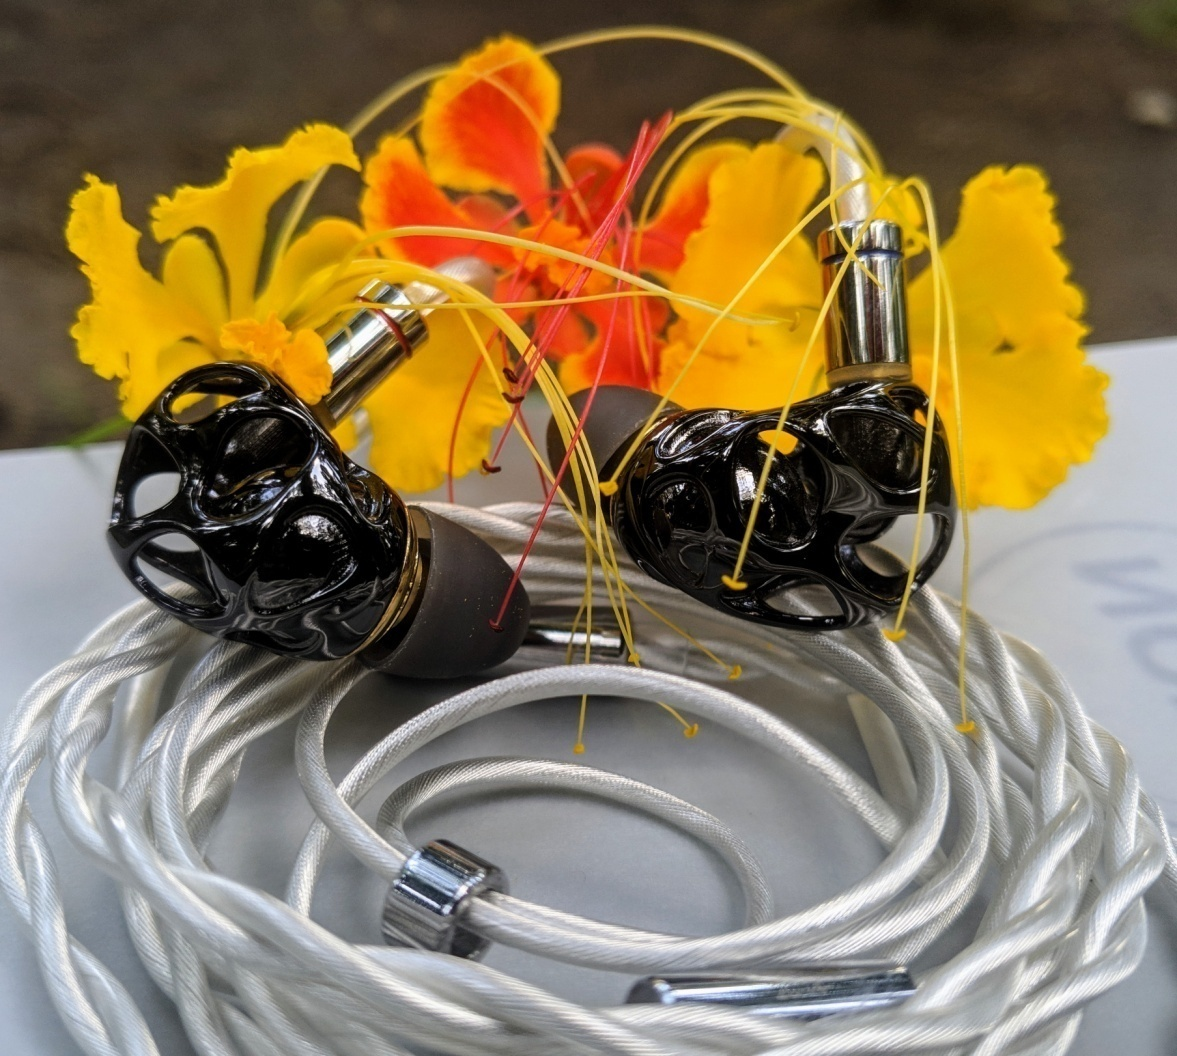 BL-A8 connected with cable besides flower